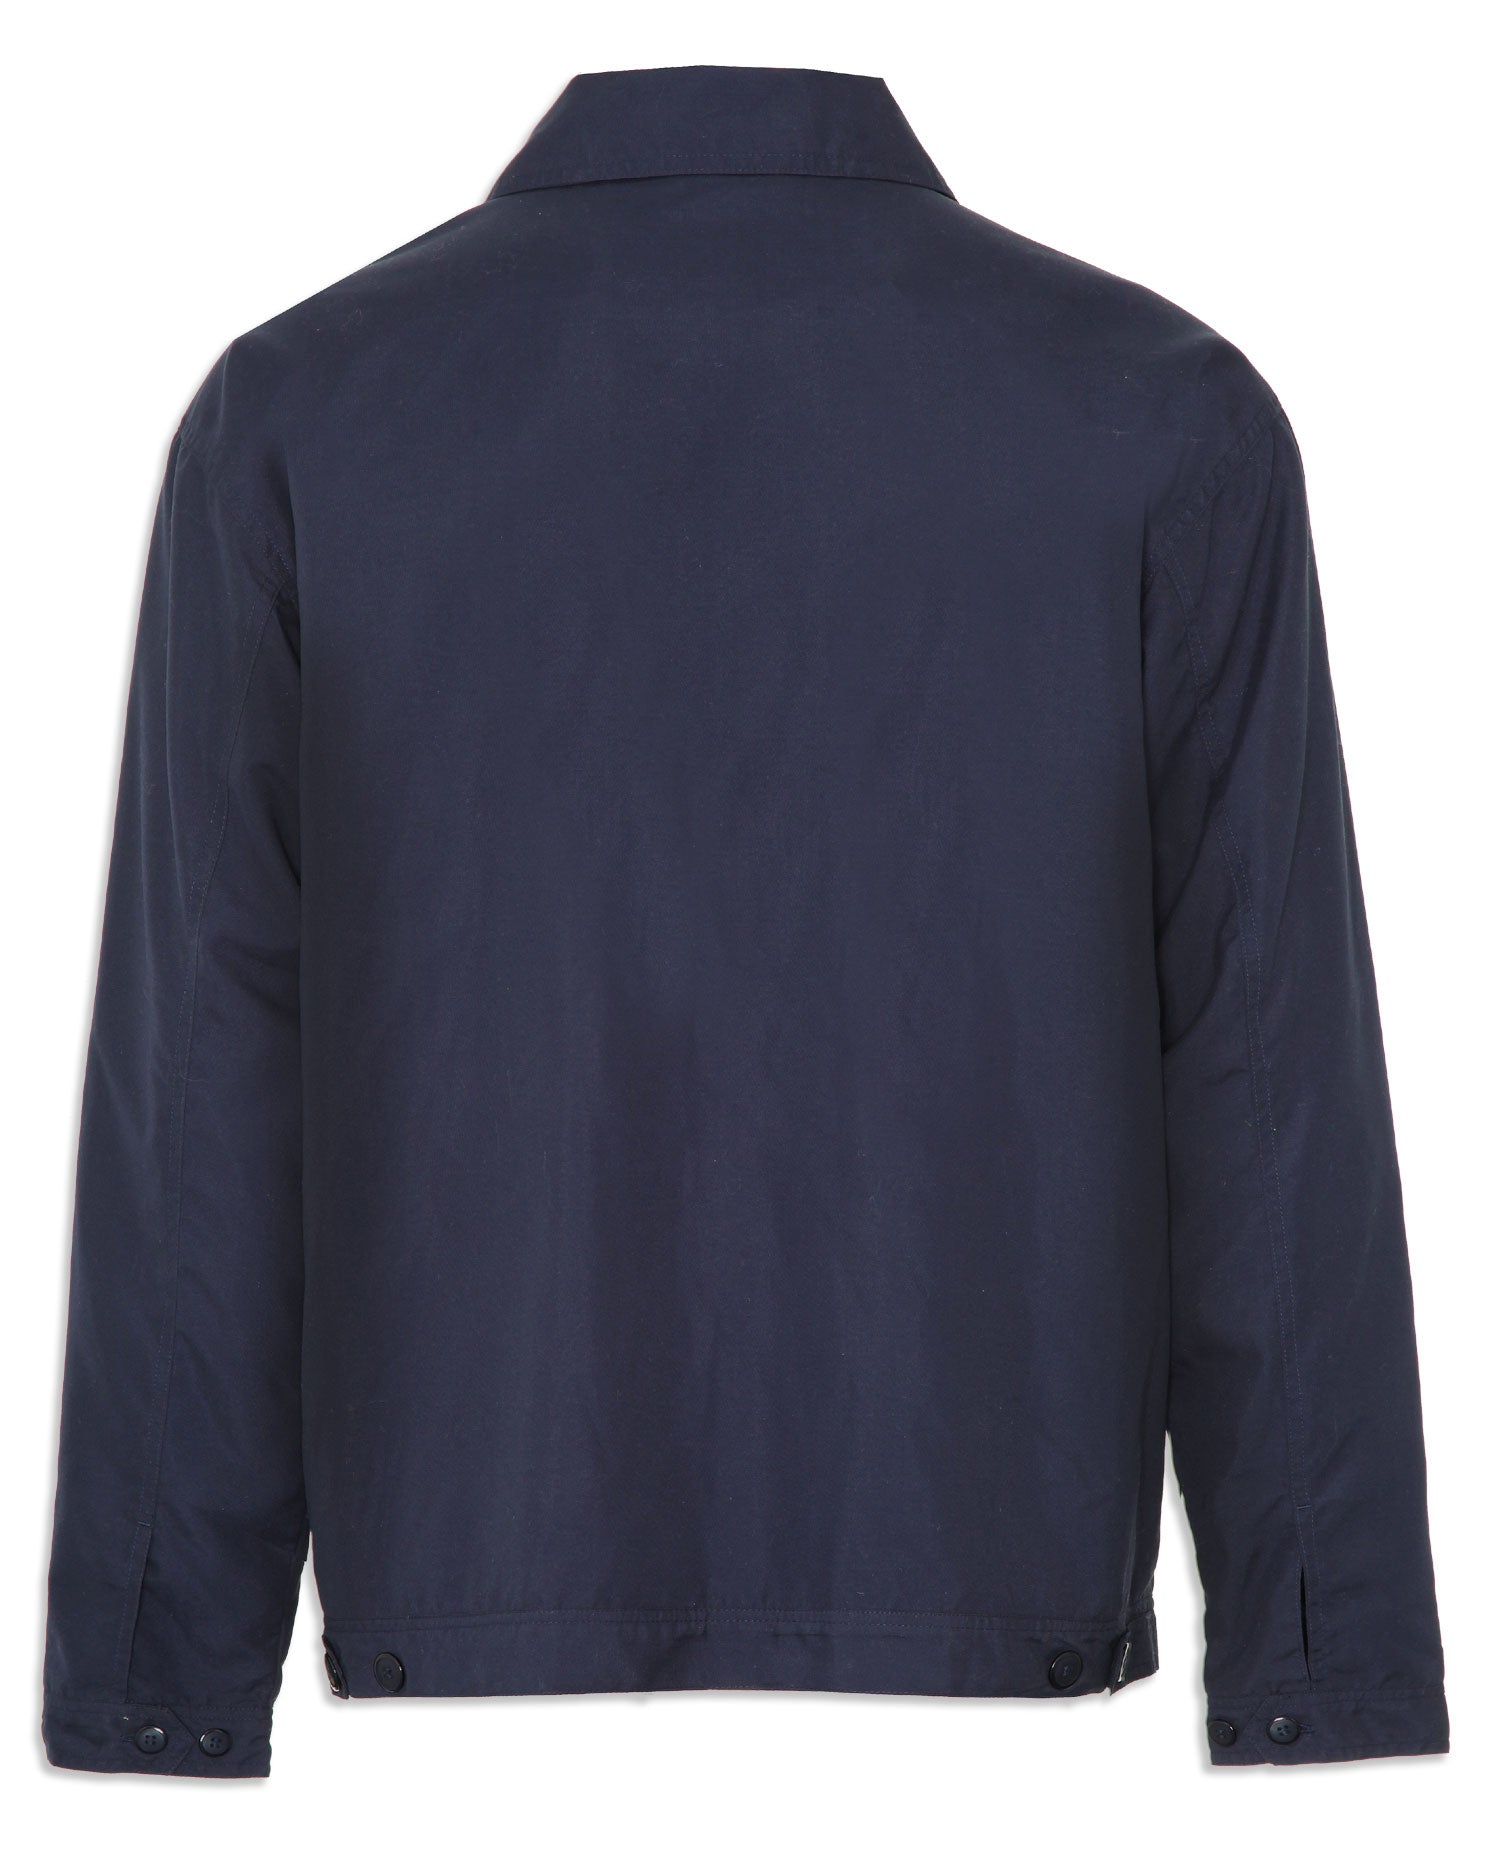 Champion birkdale jacket in navy with zip front,